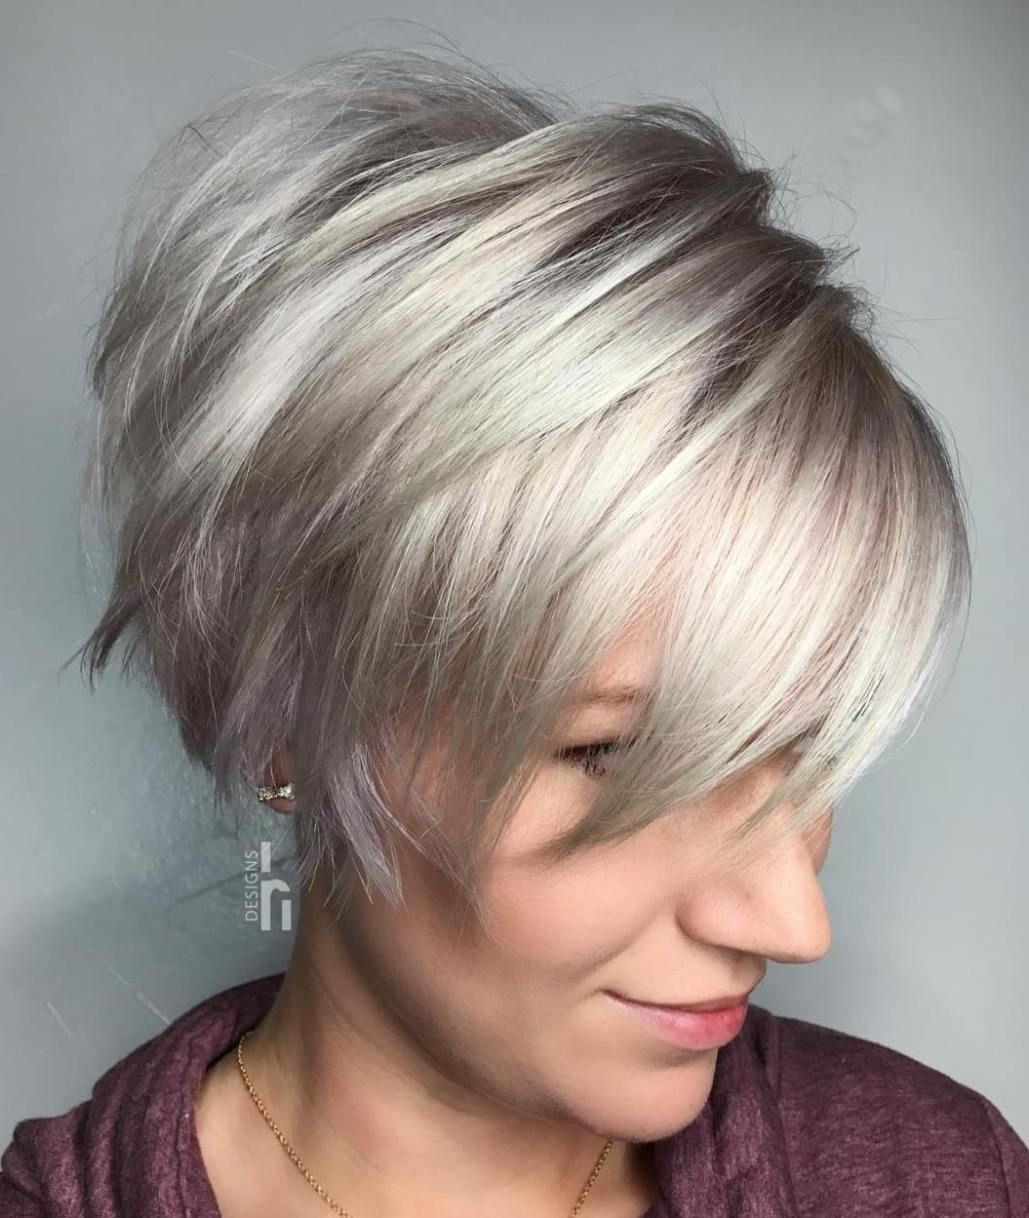 short hairstyles for fat faces 2021 version 37